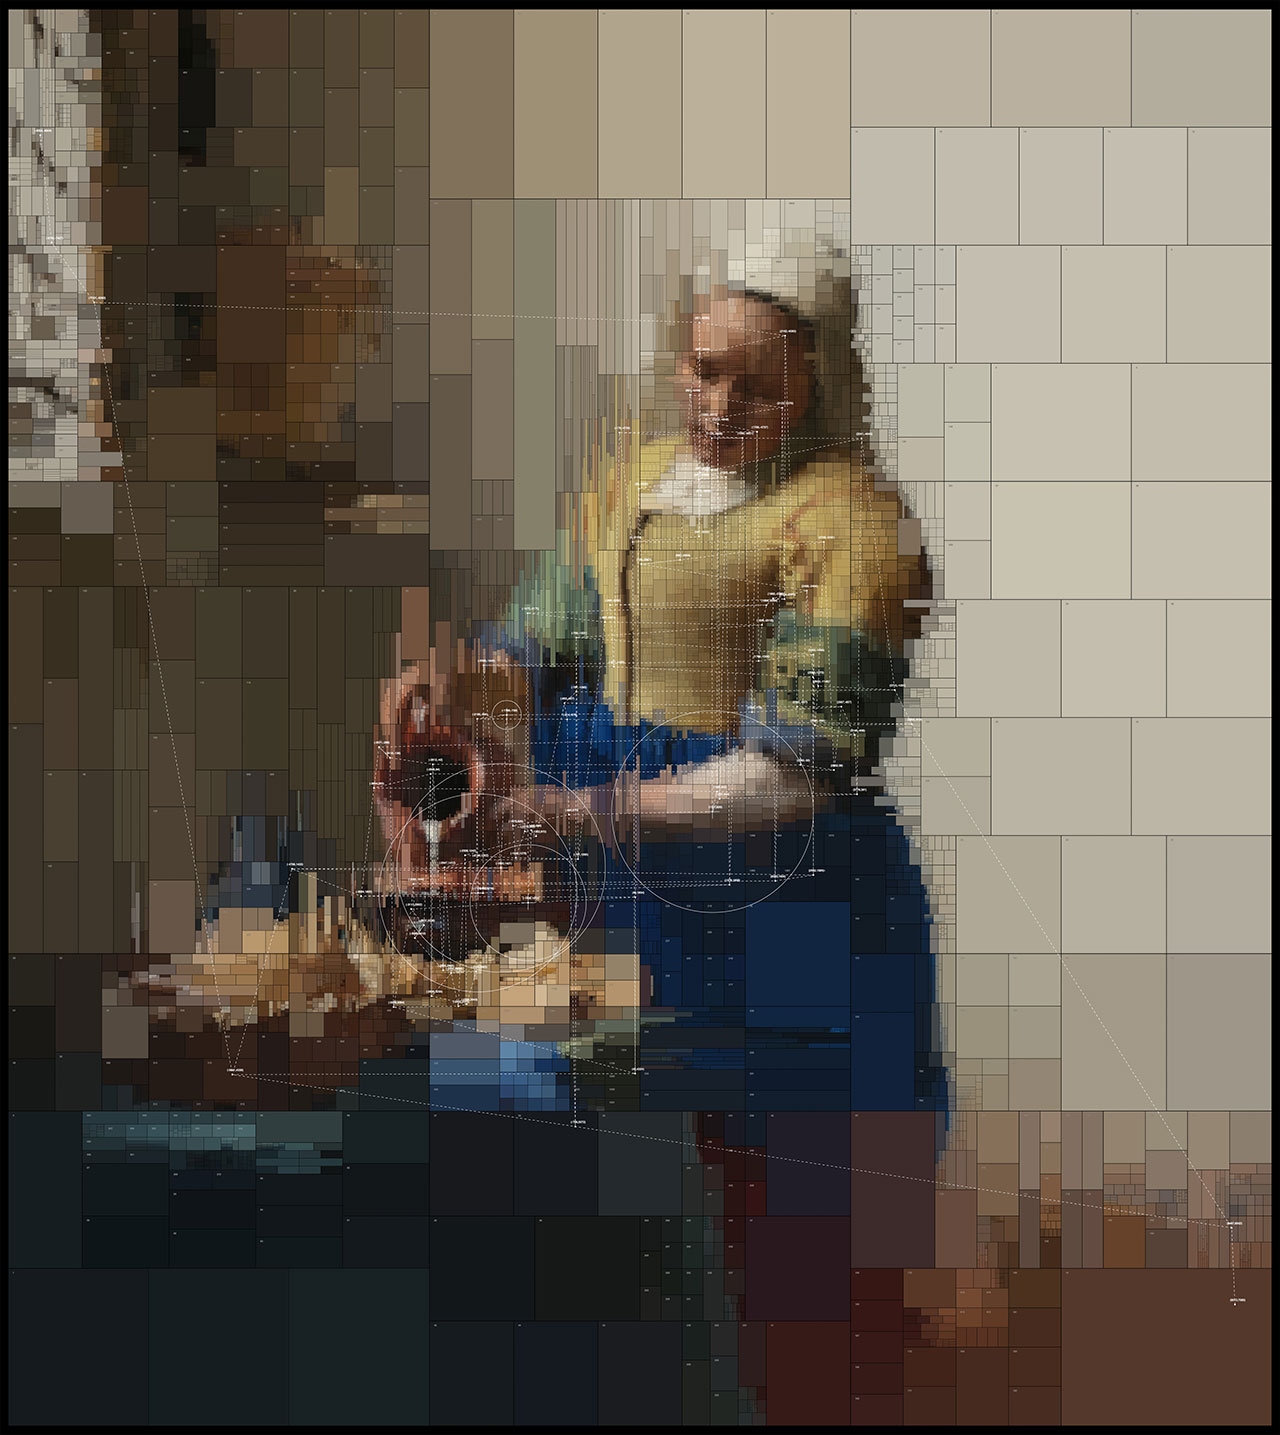 The Milkmaid, from Portraits series by Dimitris Ladopoulos (Original painting by Johannes Vermeer, 1657–1658).